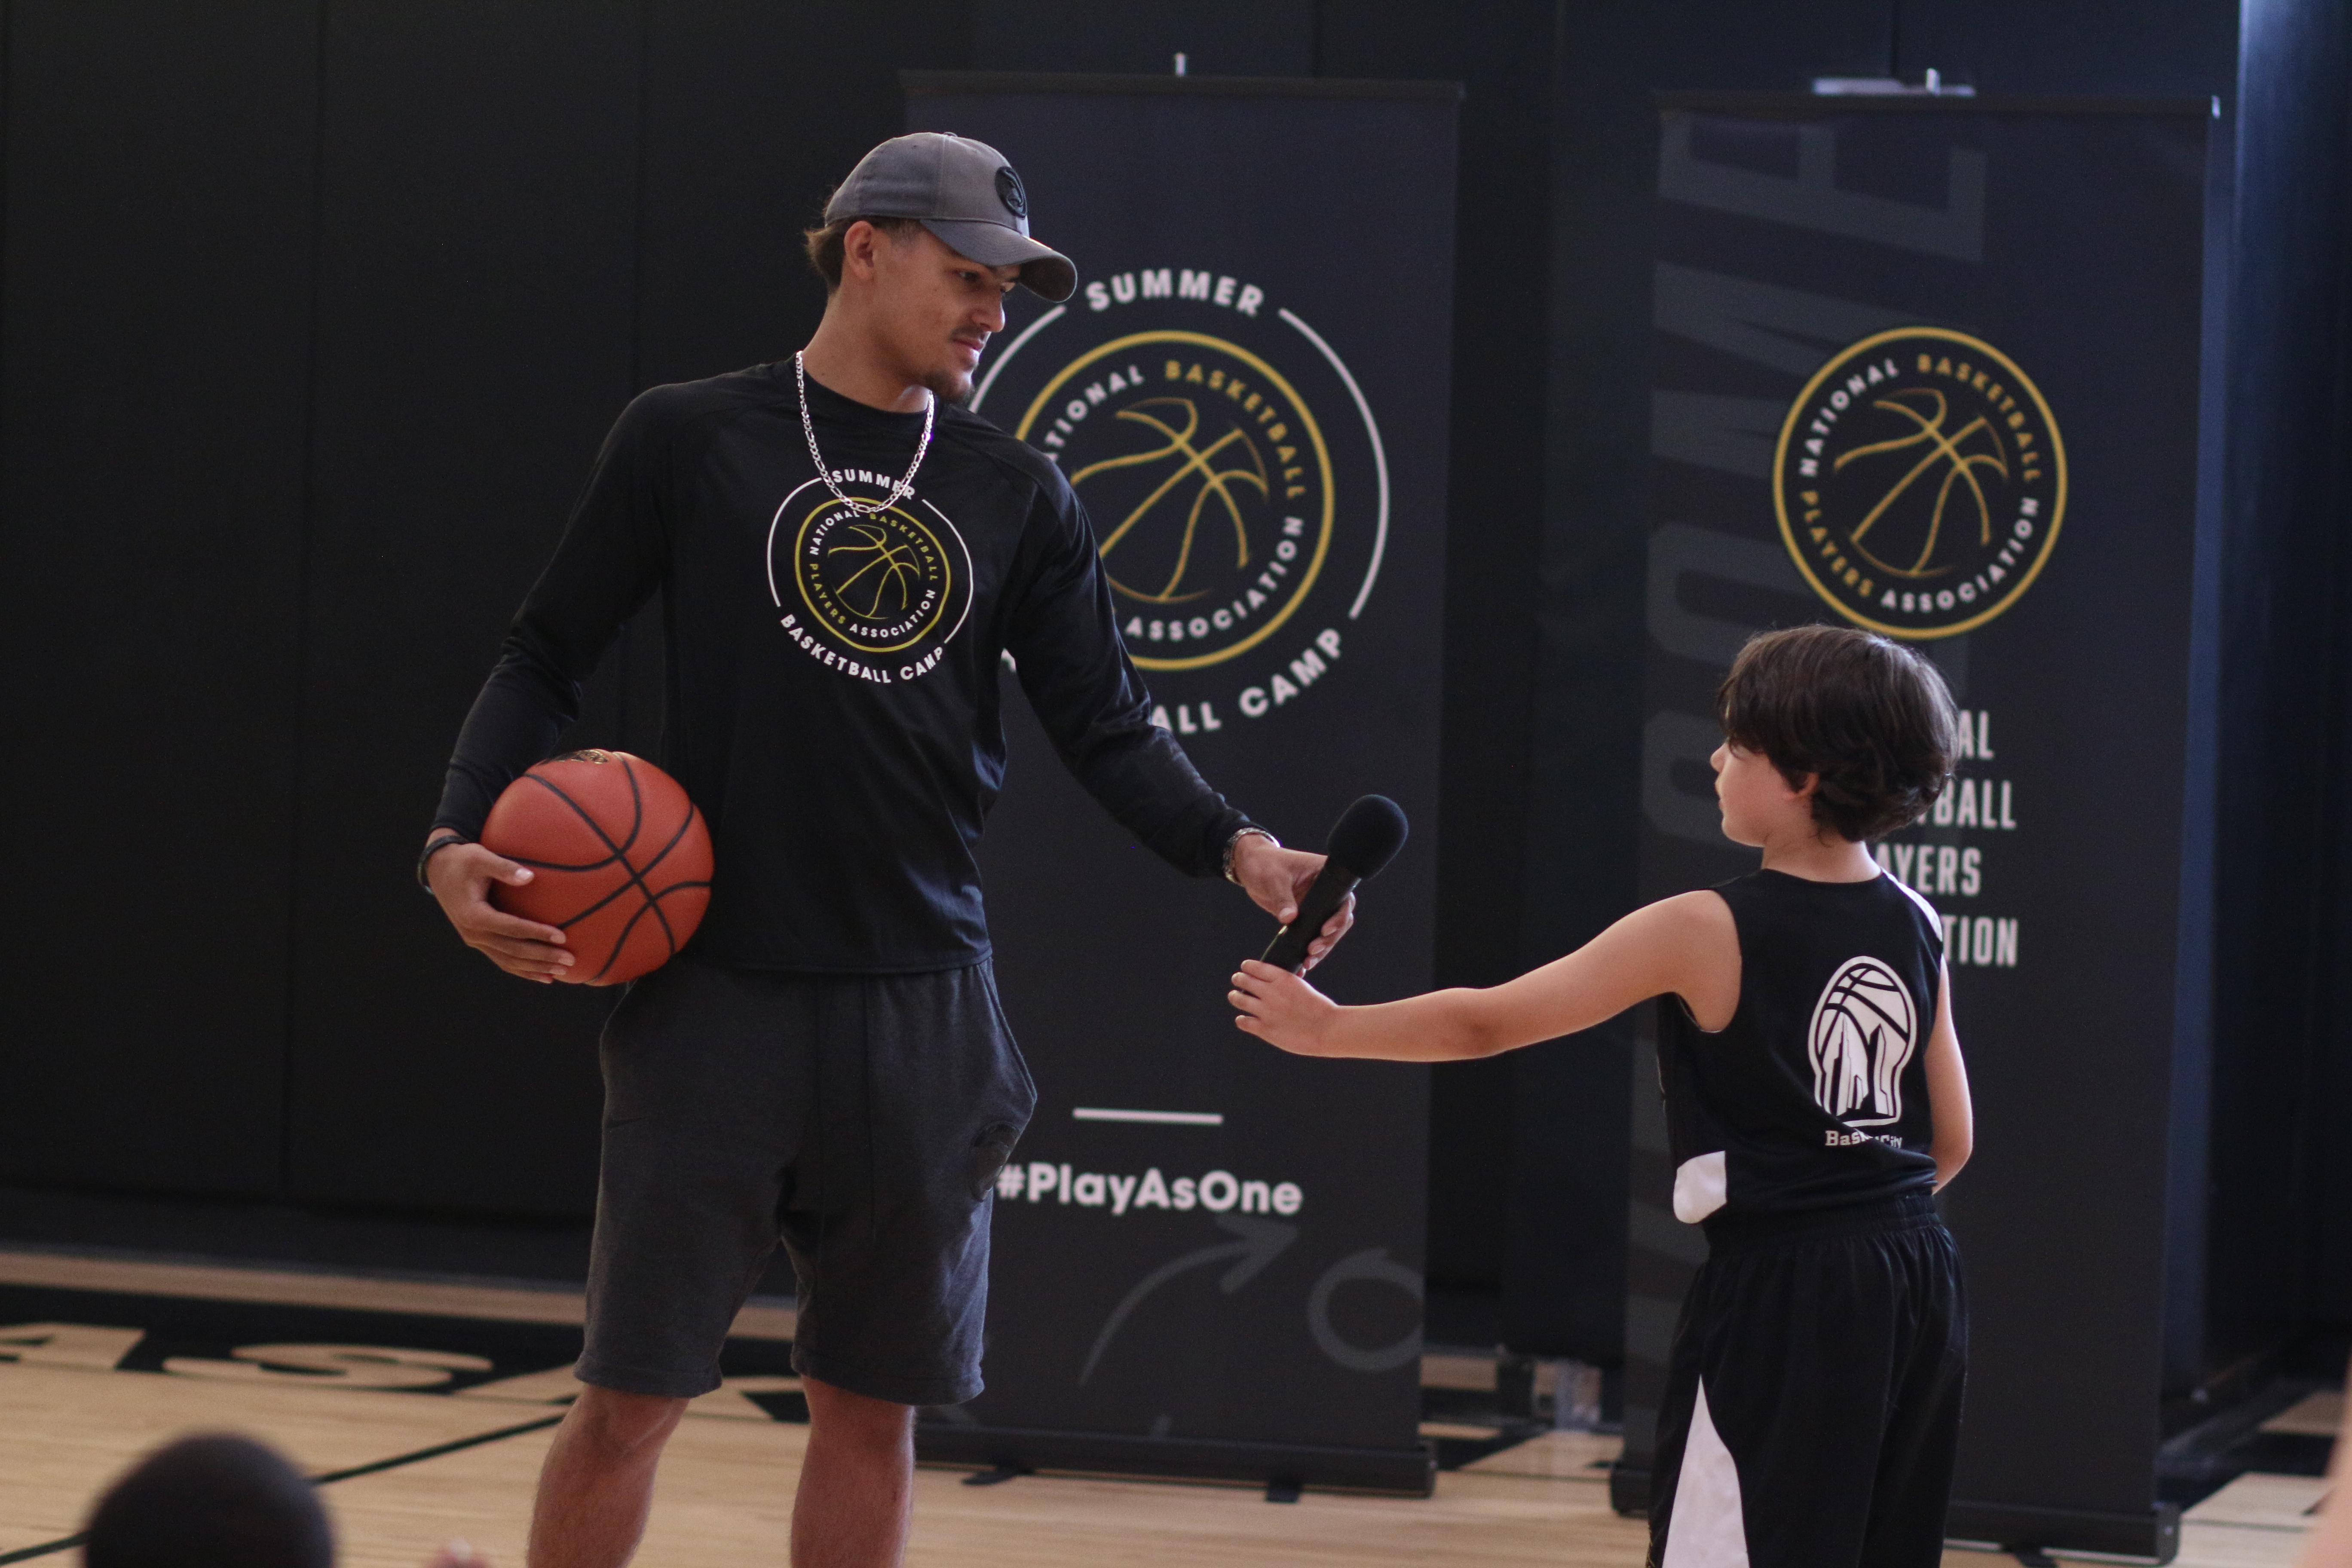 Nba Draft Speaker Diablo Vx 603 Dw Trae Young Isnt A Unicorn Hes Normal And Thats What Makes Him Special